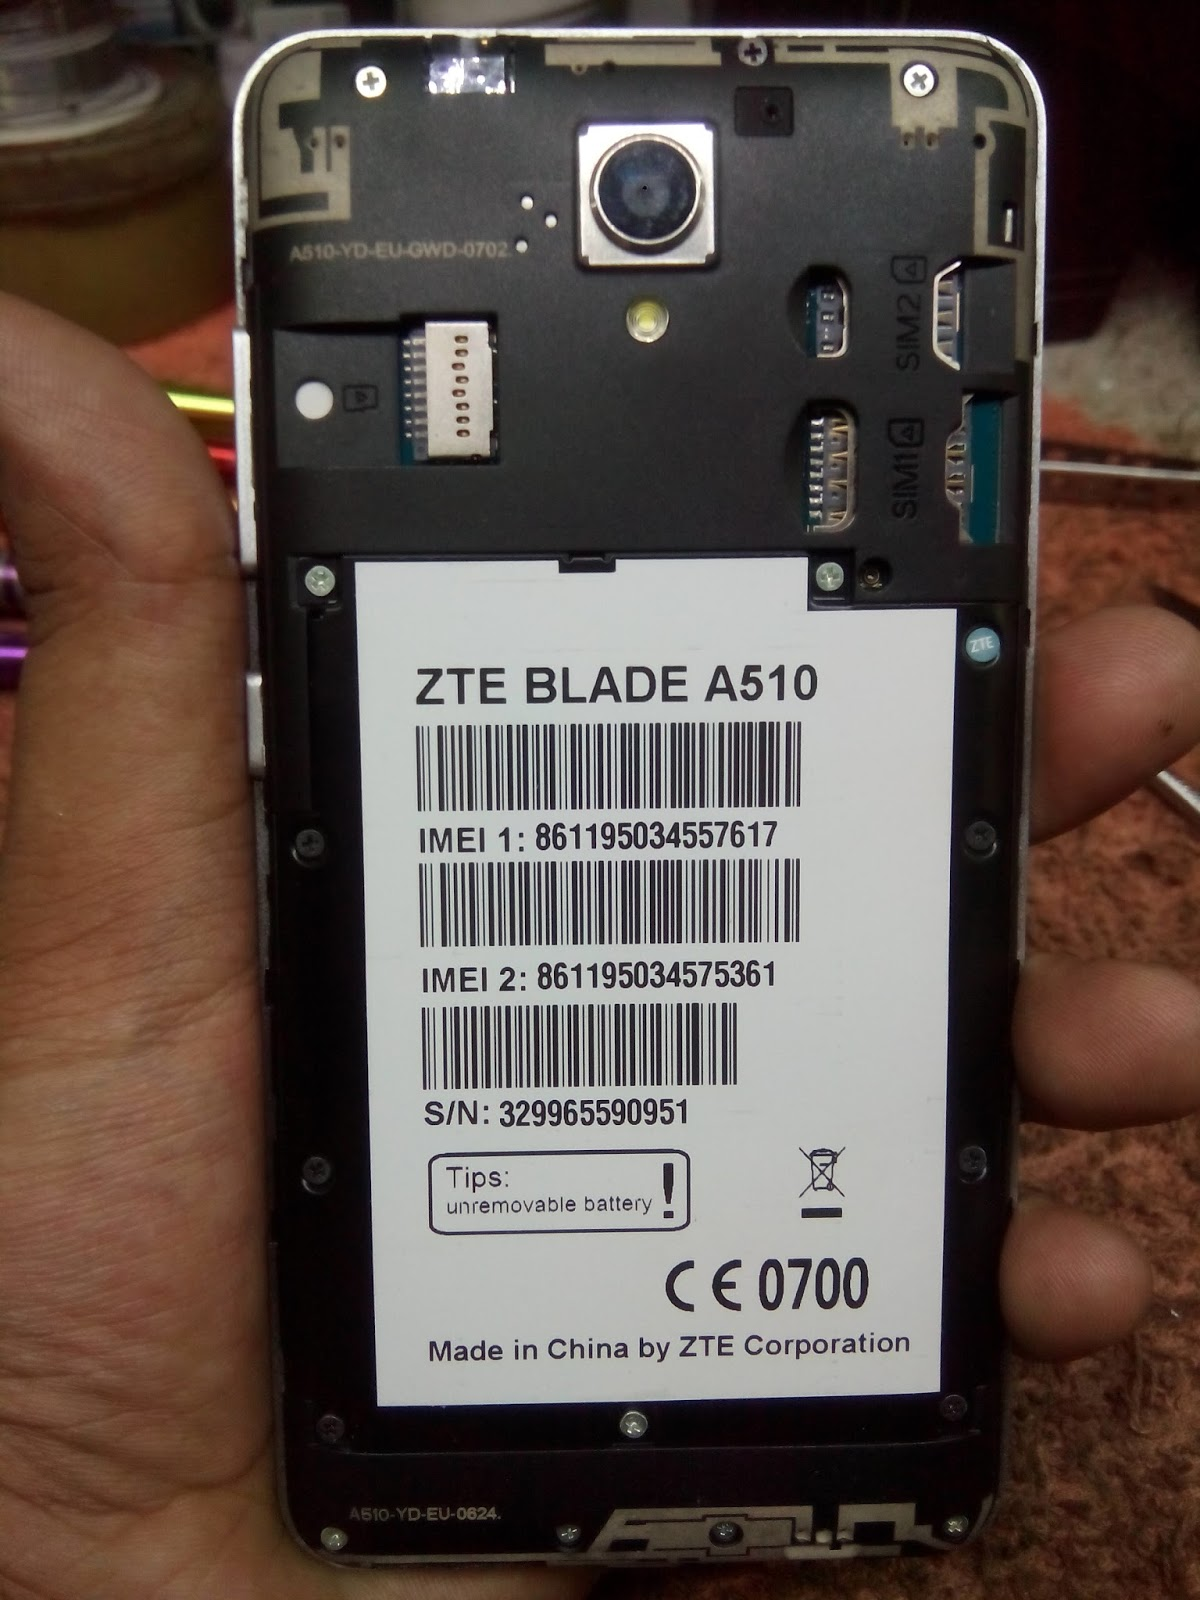 RAHIM TELECOM: ZTE BLADE A510 FLASH FILE MT6765 FIRMWARE 6 0